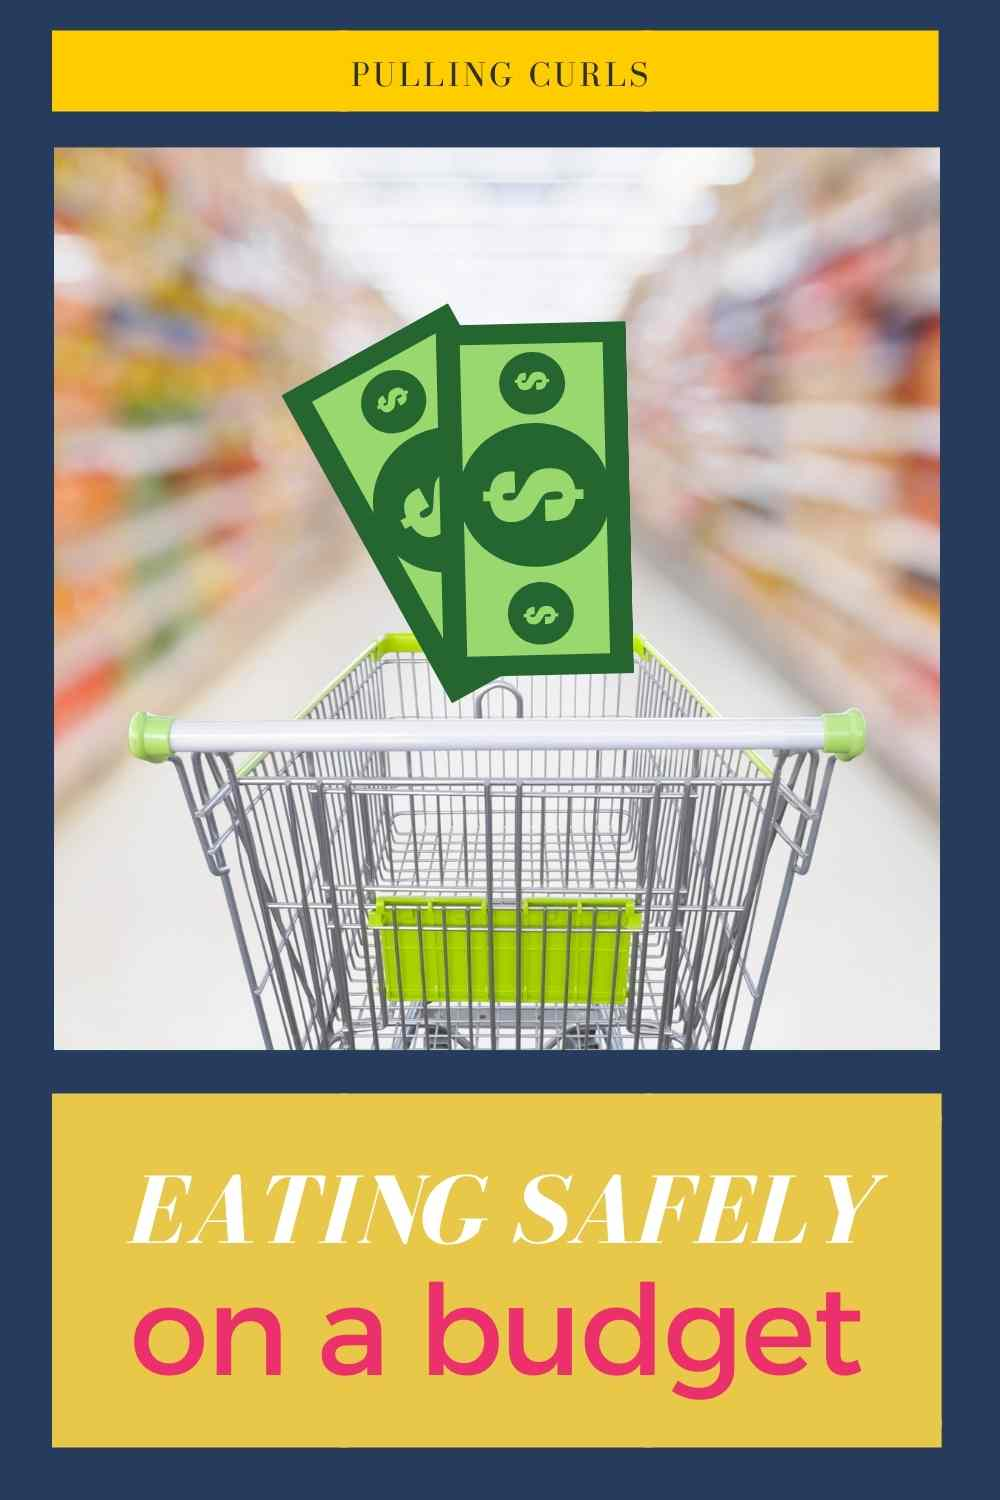 Are you worried about eating organic with your family, but also need to stay on a budget? Dr. Samantha Radford is going to talk about her best tips for eating safe on a budget. via @pullingcurls